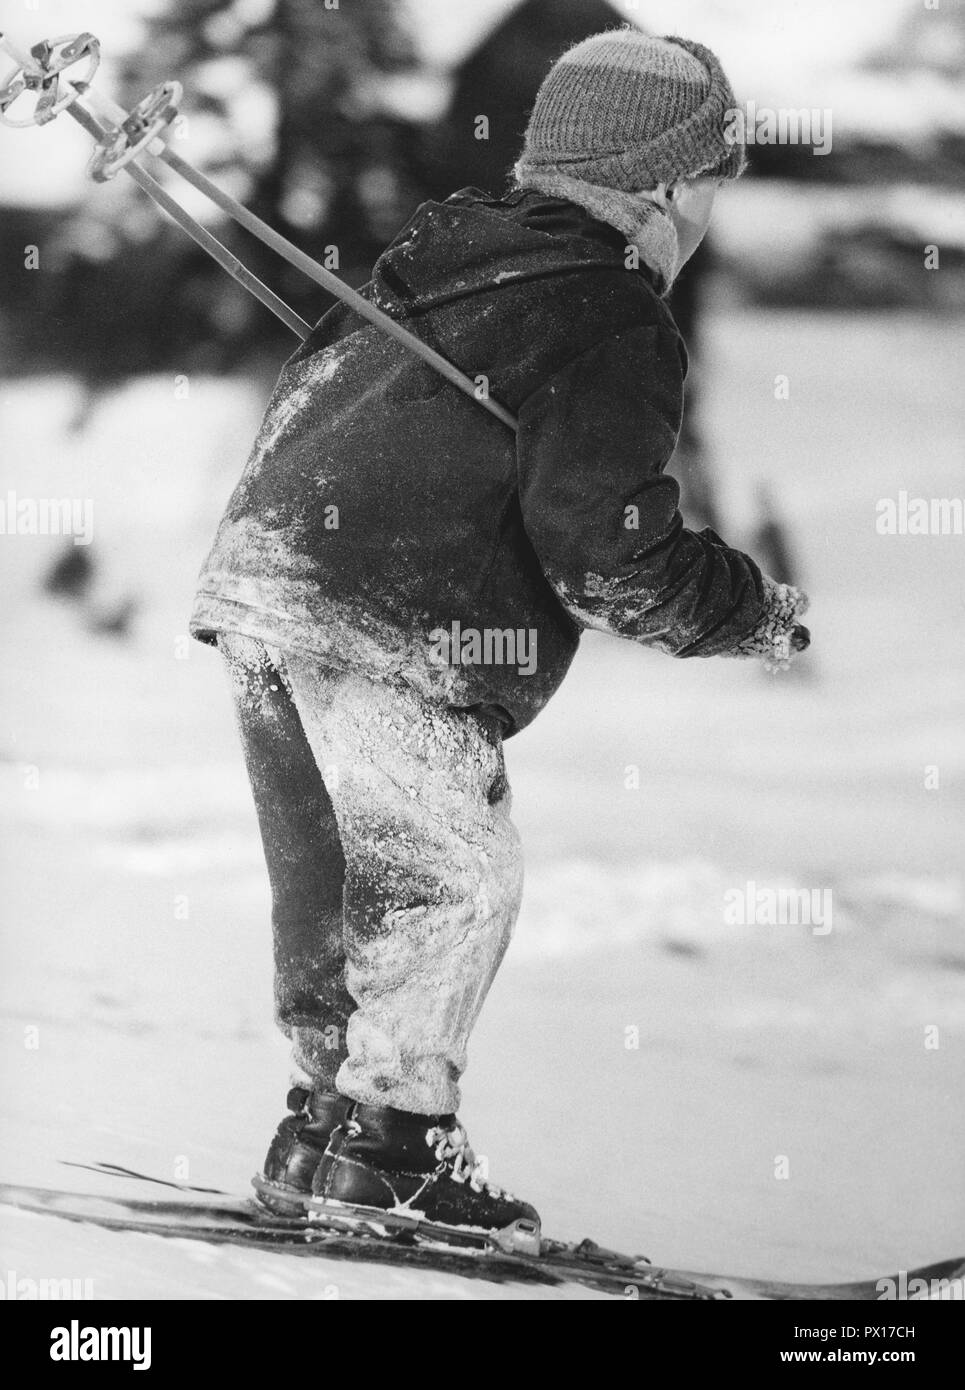 Winter in the 1960s. A boy is skiing. By the looks of the snow on his clothes, he has fallen many times. Sweden 1960s Stock Photo